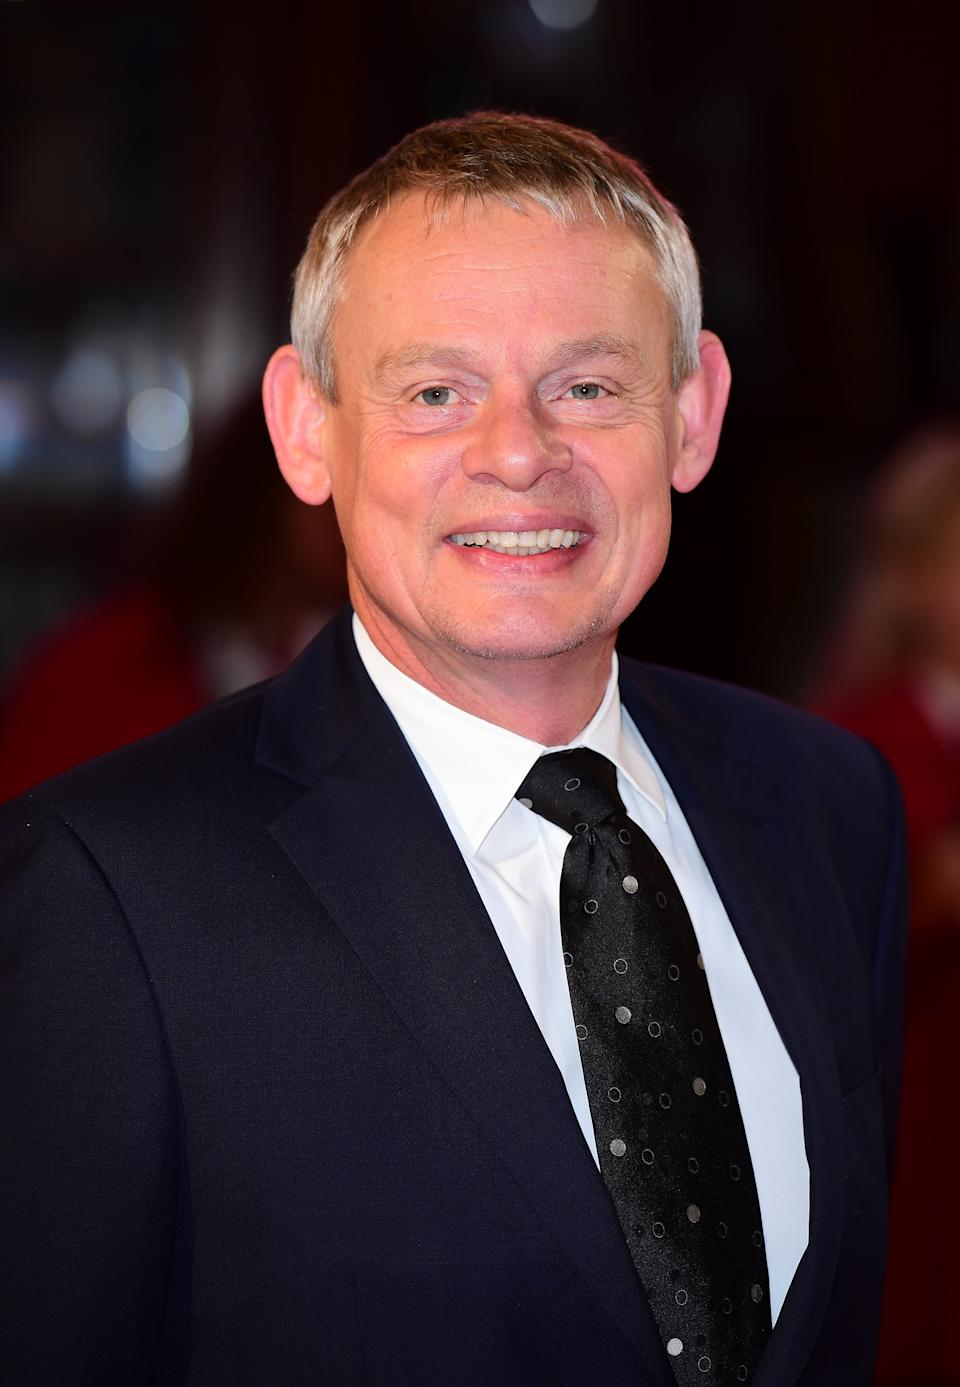 Martin Clunes attending the ITV Gala at the London Palladium. PRESS ASSOCIATION Photo. Picture date: Thursday November 24, 2016. See PA story SHOWBIZ Gala. Photo credit should read: Ian West/PA Wire (Photo by Ian West/PA Images via Getty Images)